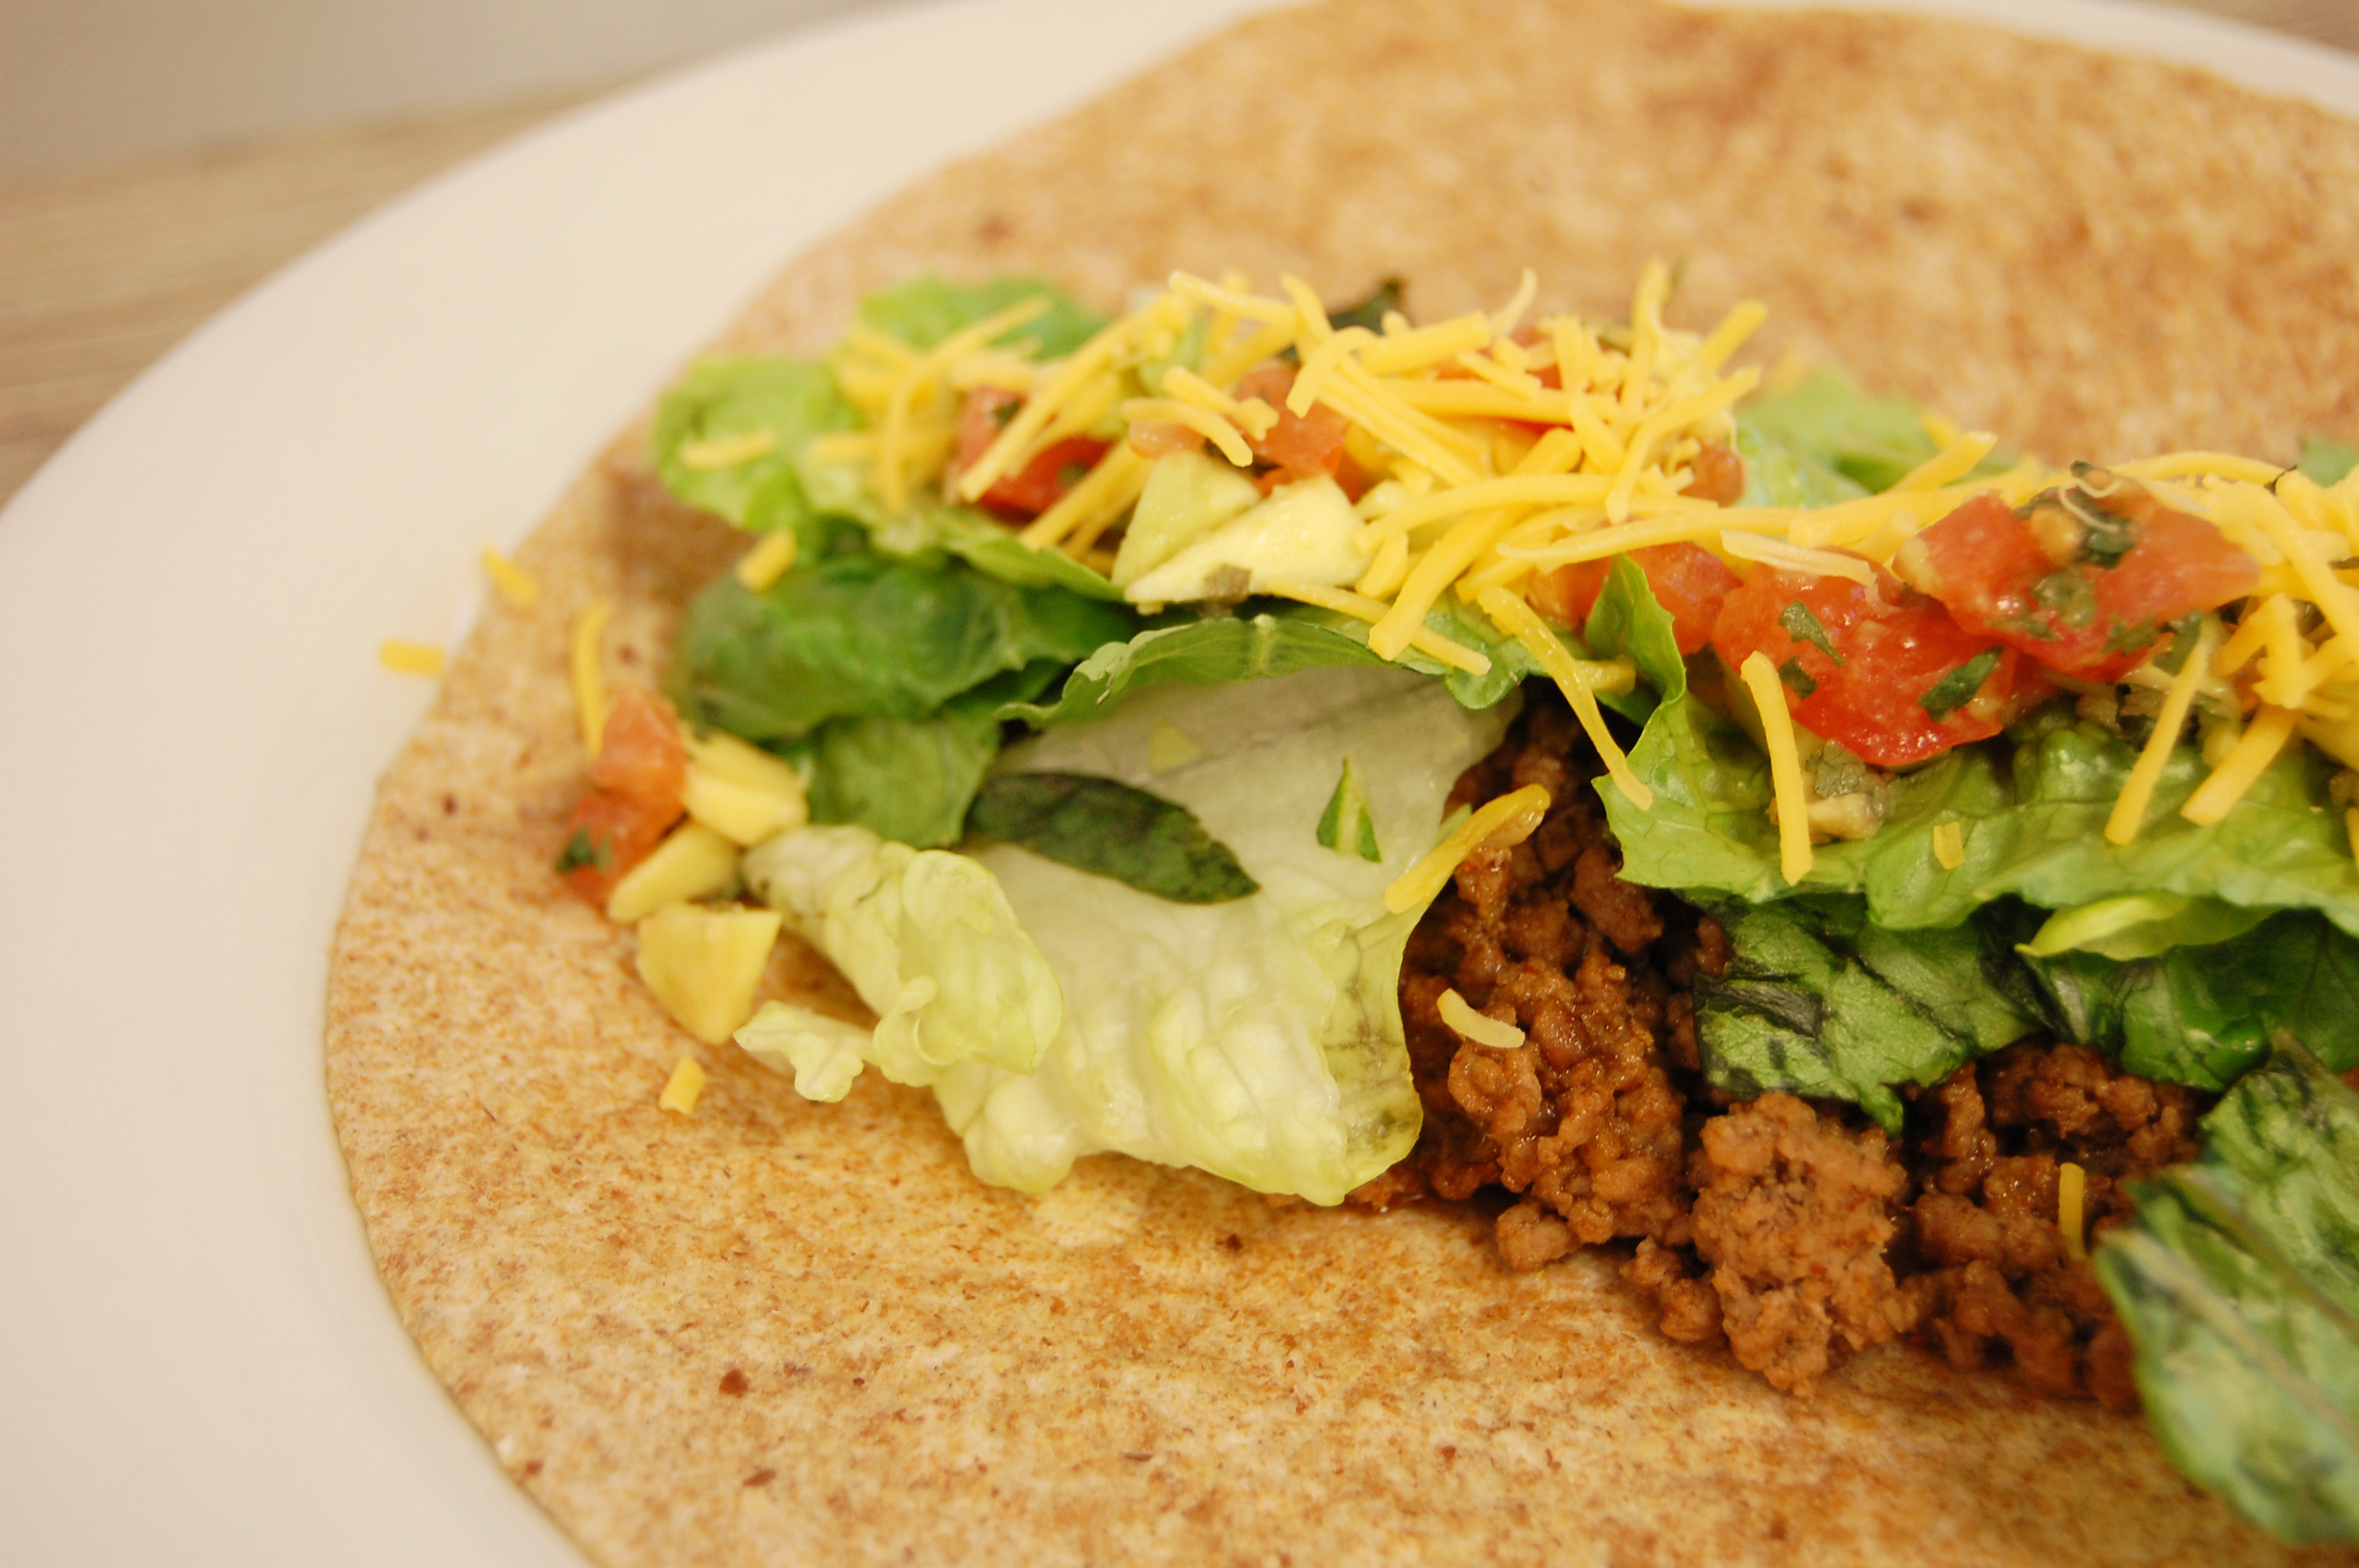 This receipe can help you include some leafy greens in your meal. (NDSU photo)